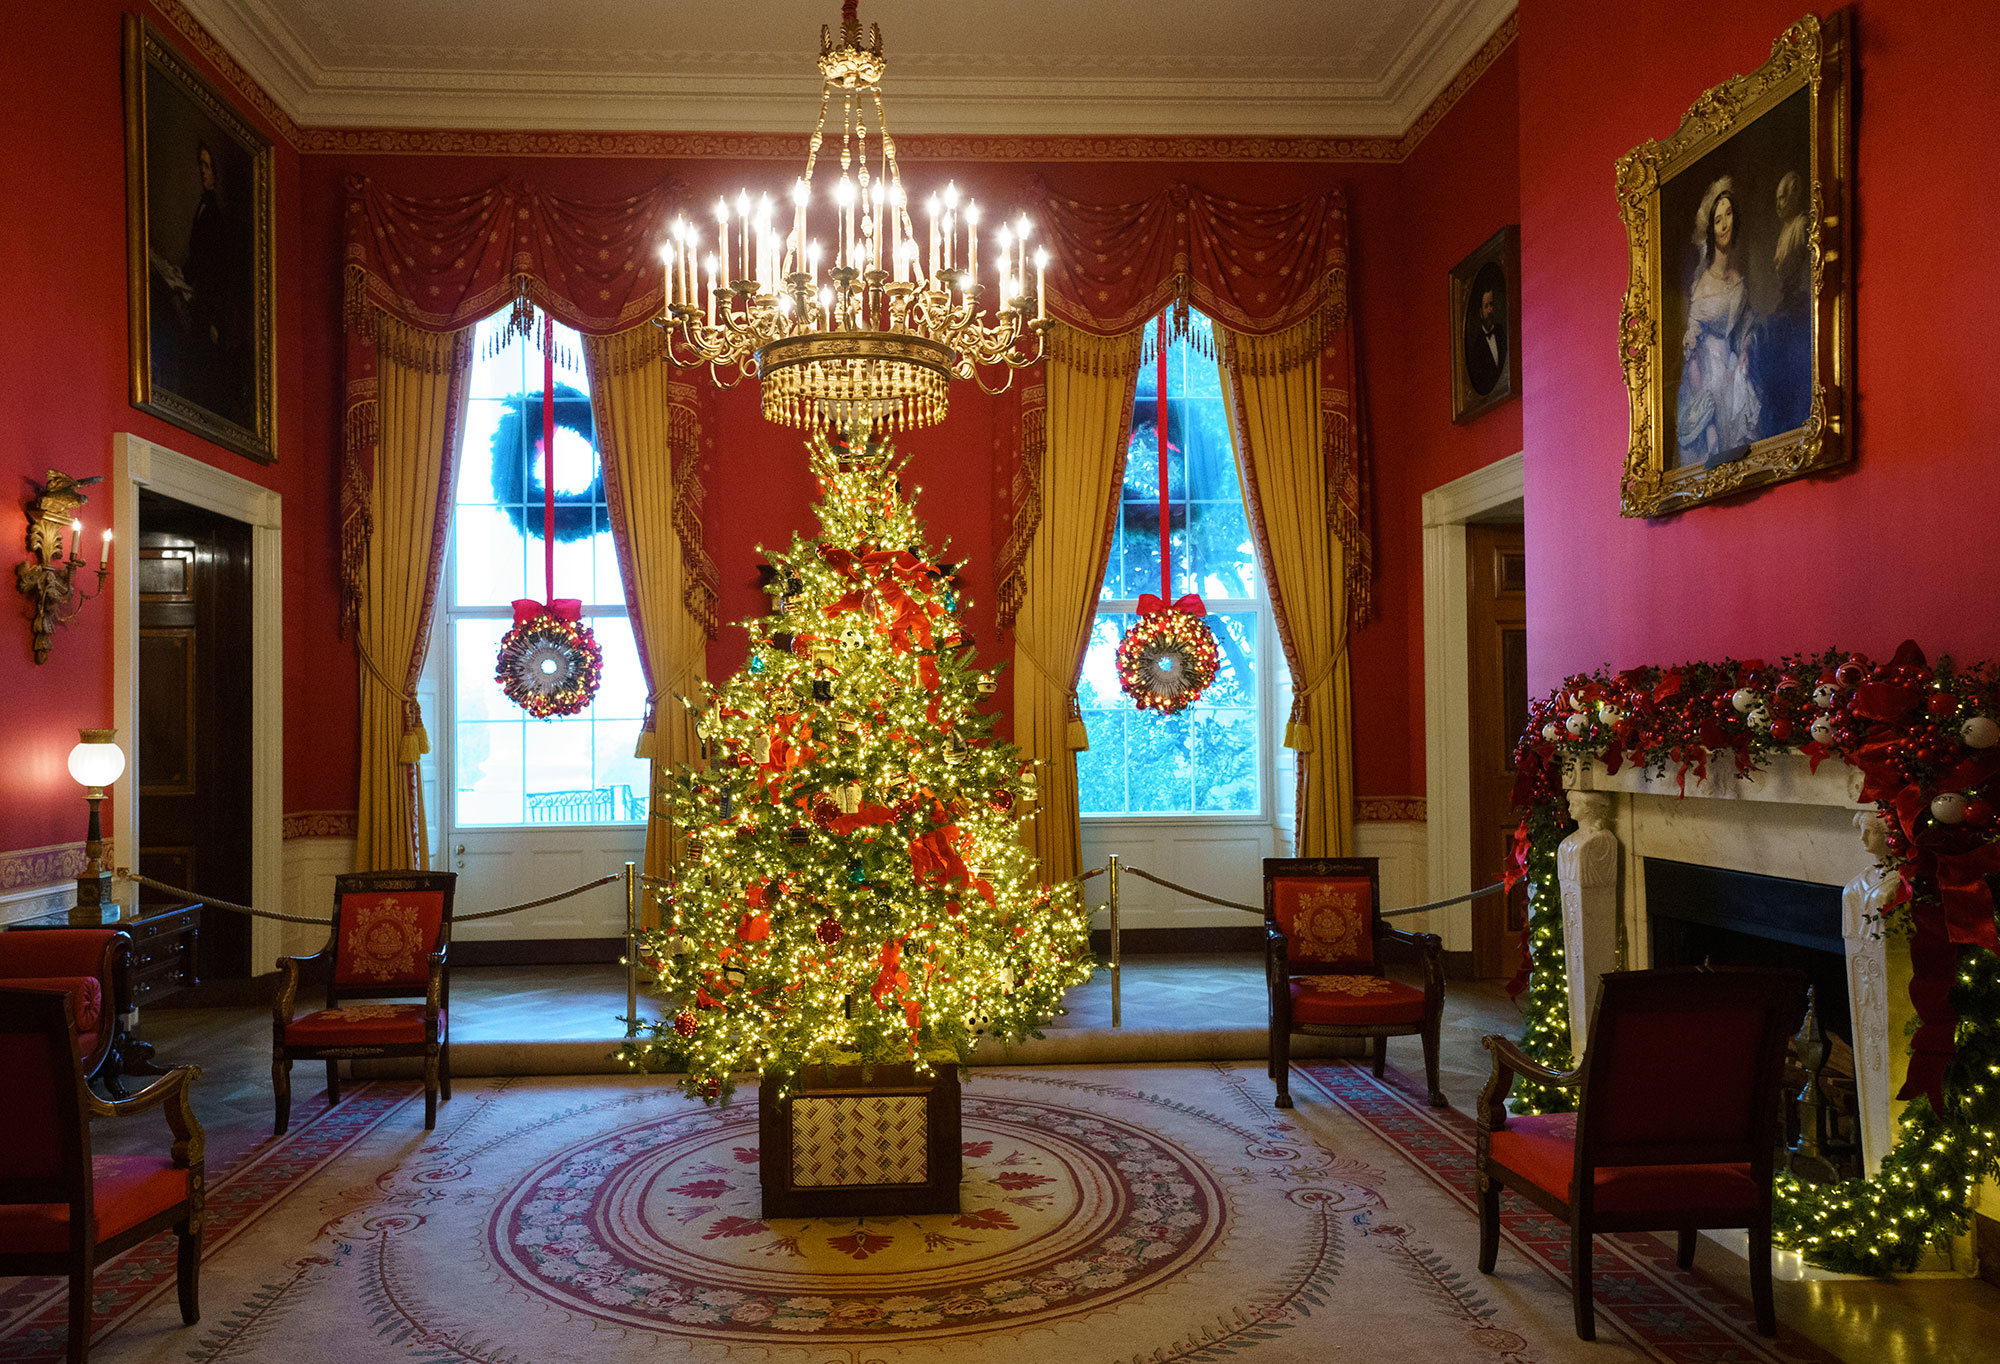 <div class='meta'><div class='origin-logo' data-origin='none'></div><span class='caption-text' data-credit='Carolyn Kaster/AP Photo'>The Red Room, with the theme to celebrate America's Children, is seen during the 2018 Christmas preview at the White House in Washington, Monday, Nov. 26, 2018.</span></div>